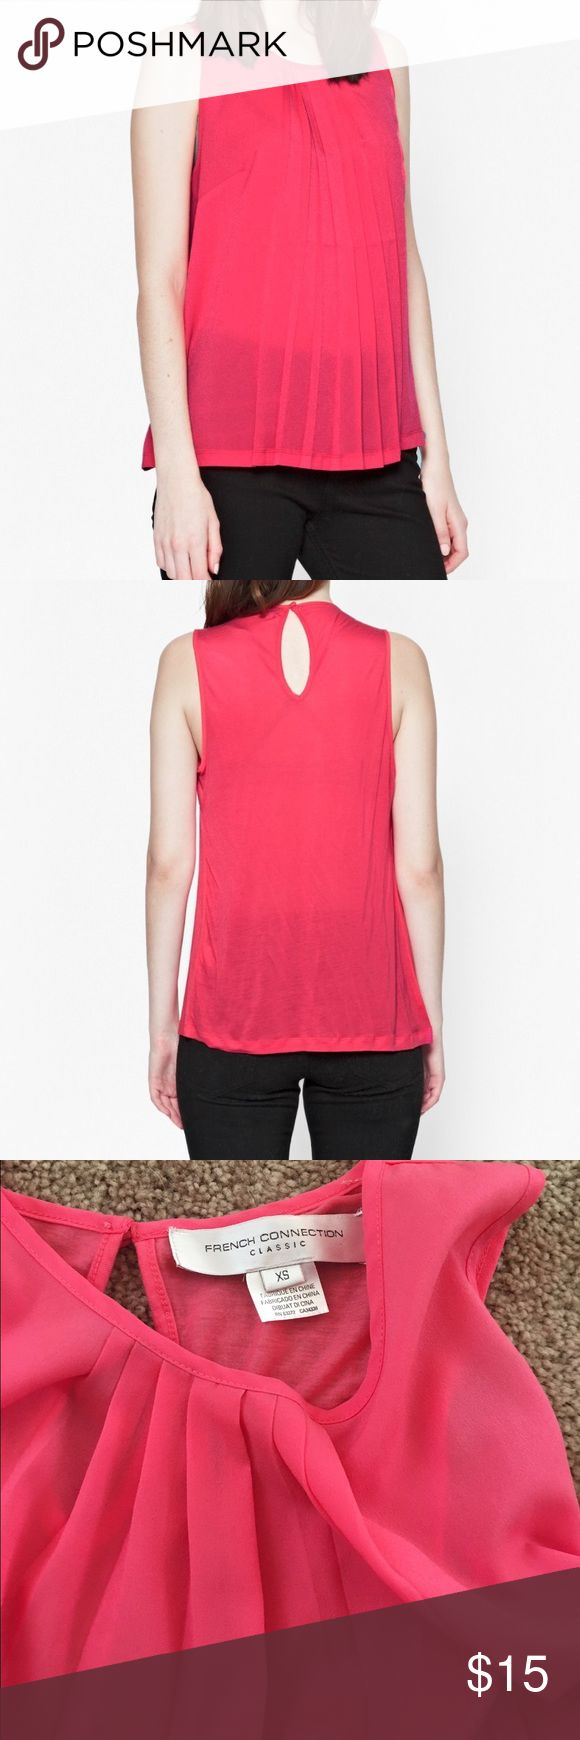 French connection pleeted sheer tank Sz XS coral Never worn Sz XS sheer light weight super cute tucked in with jeans or left out coral pink color sweet tank French connection French Connection Tops Tank Tops